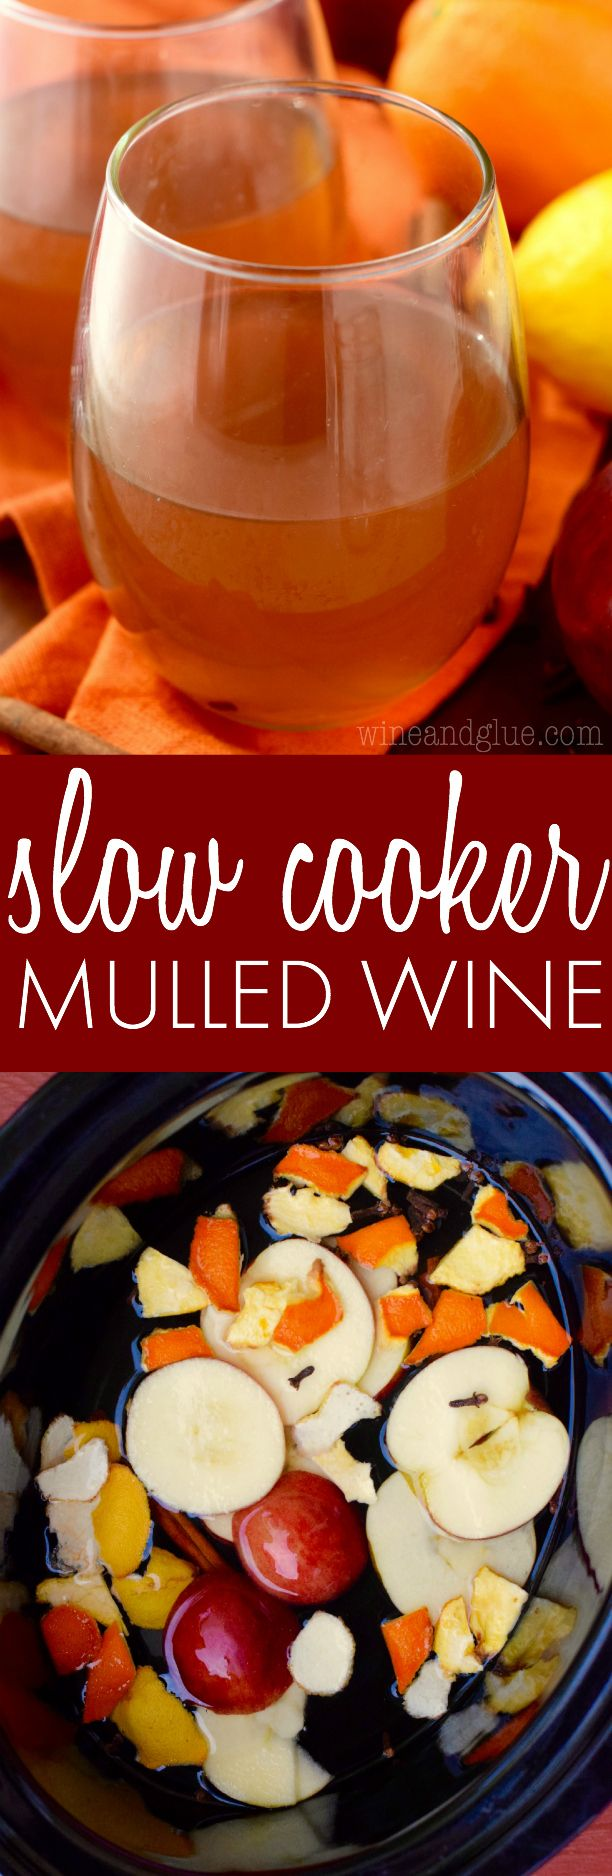 This Slow Cooker Mulled Wine comes together in your crock pot with a little white wine and some easy to find ingredients! So delicious and perfect for the holidays and cool weather!